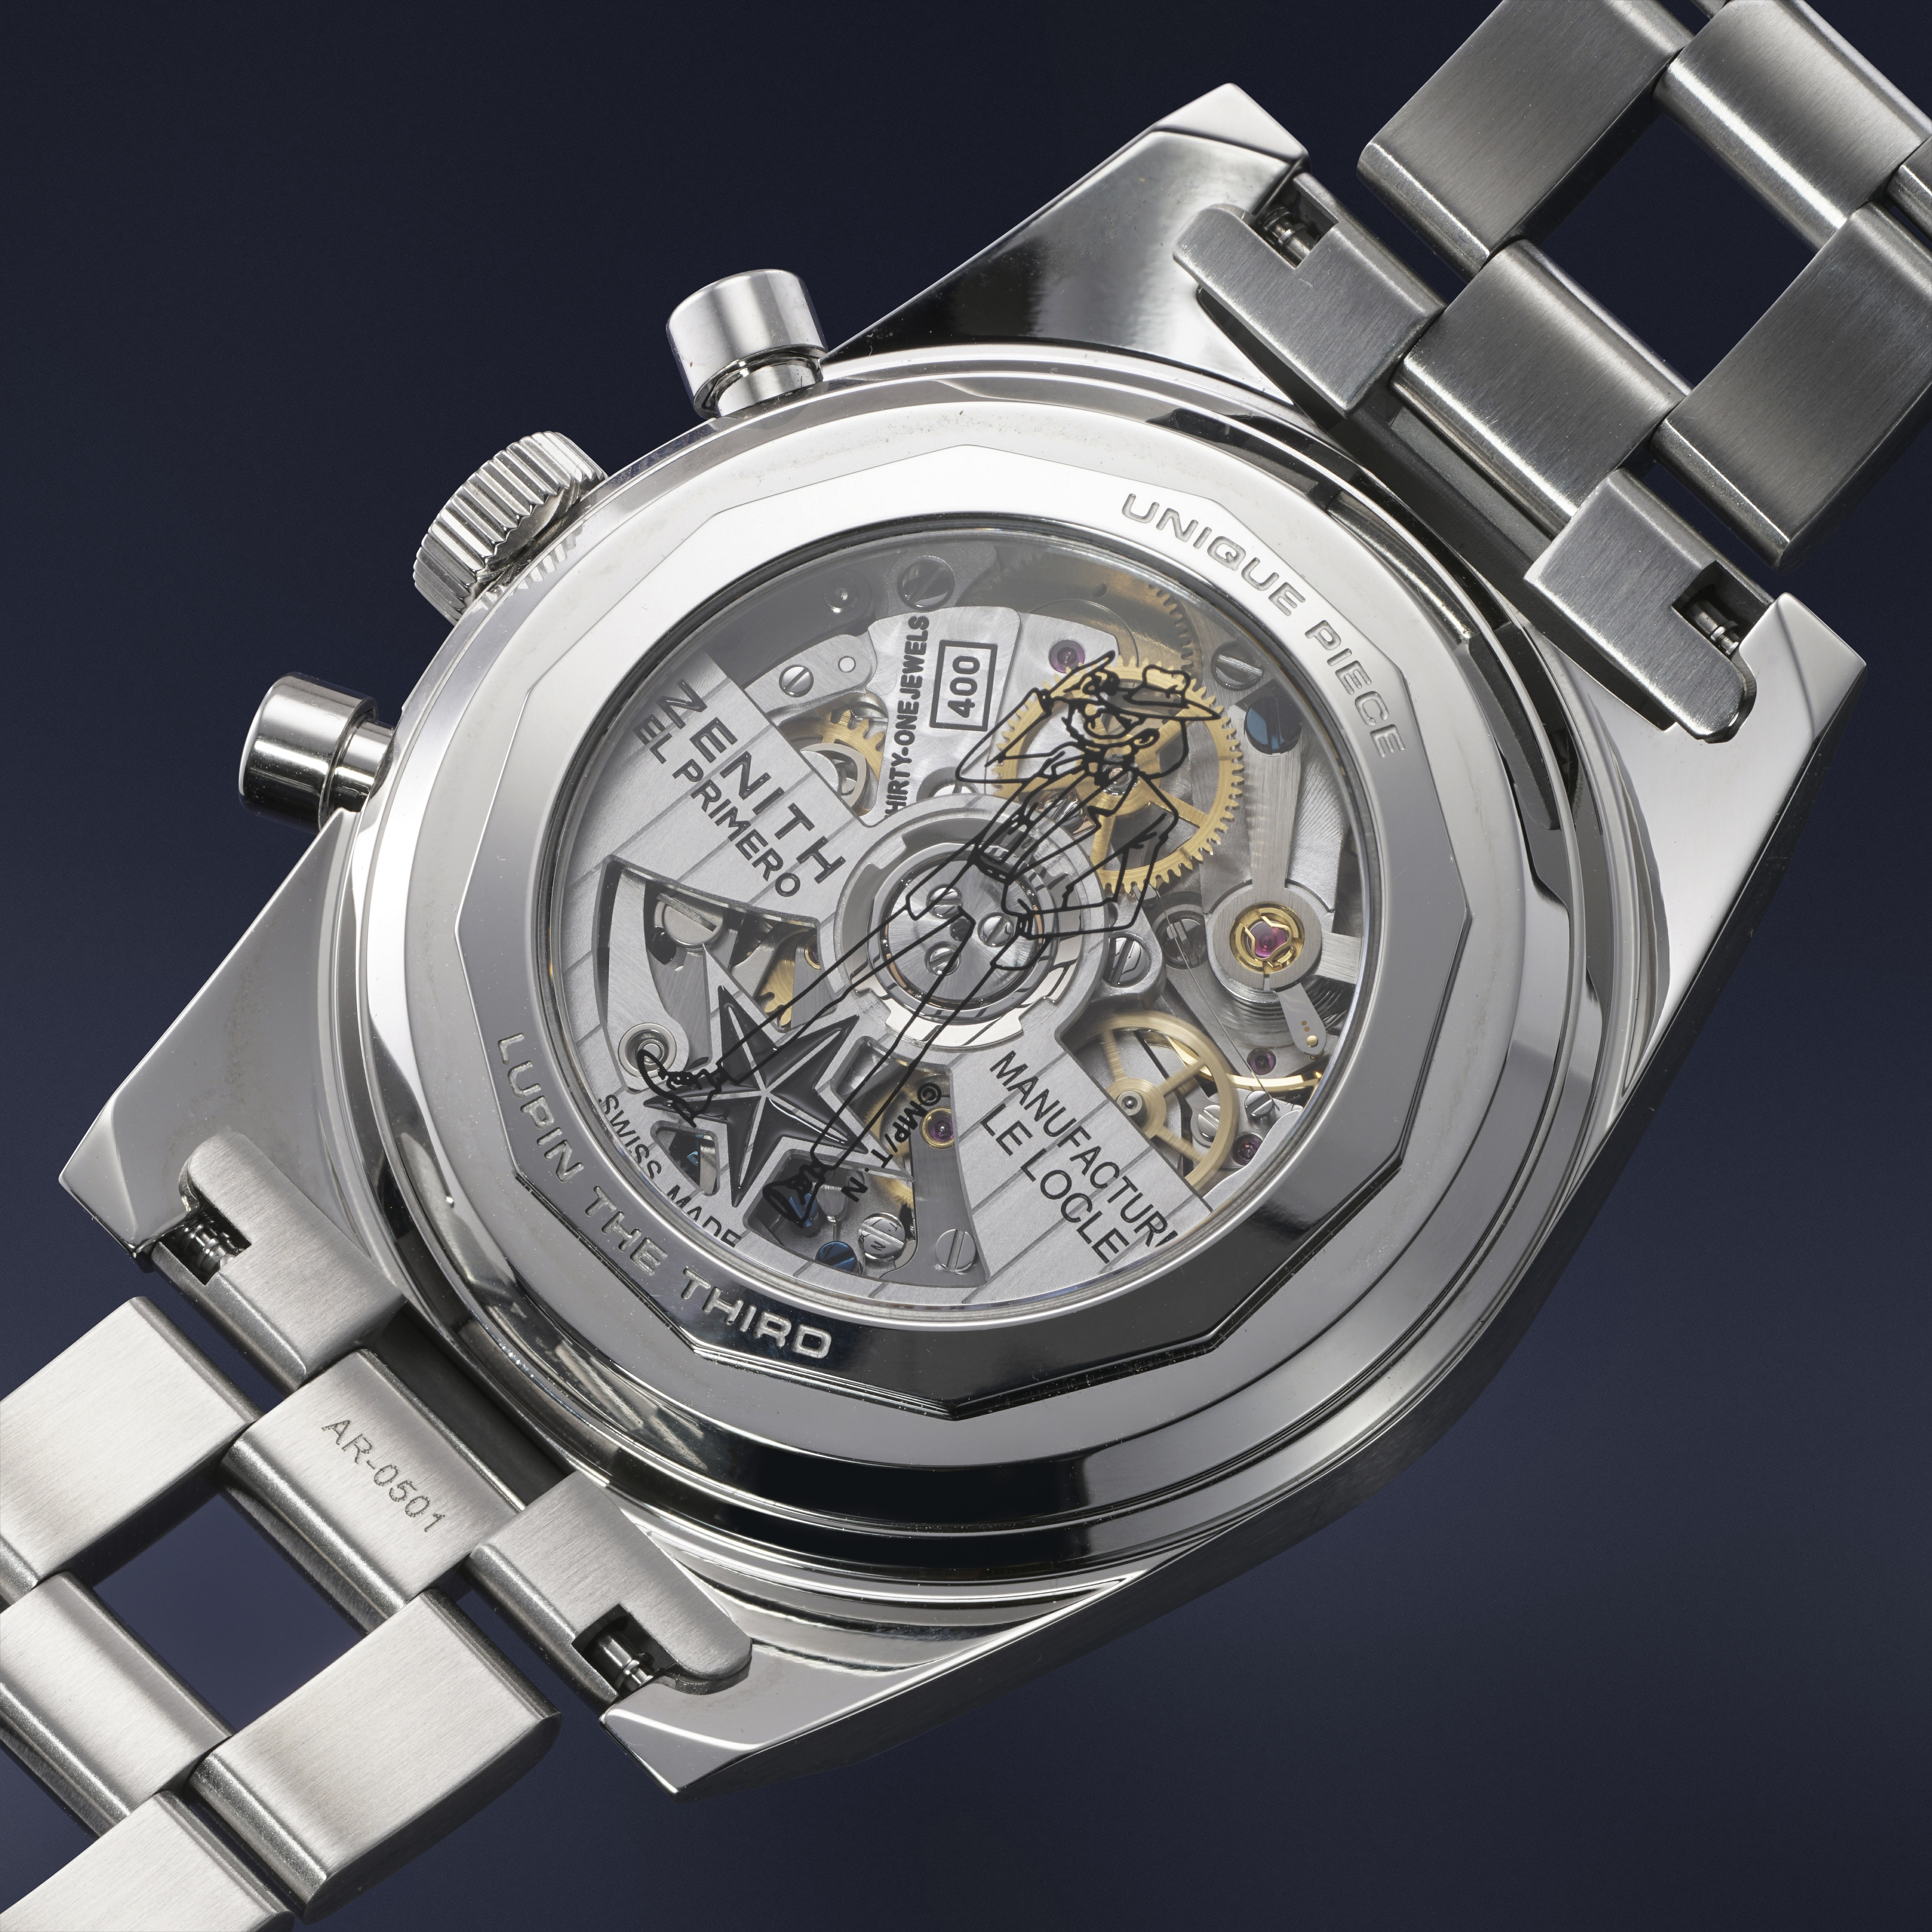 ZENITH_LUPIN THE THIRD ONE OFF_CASEBACK